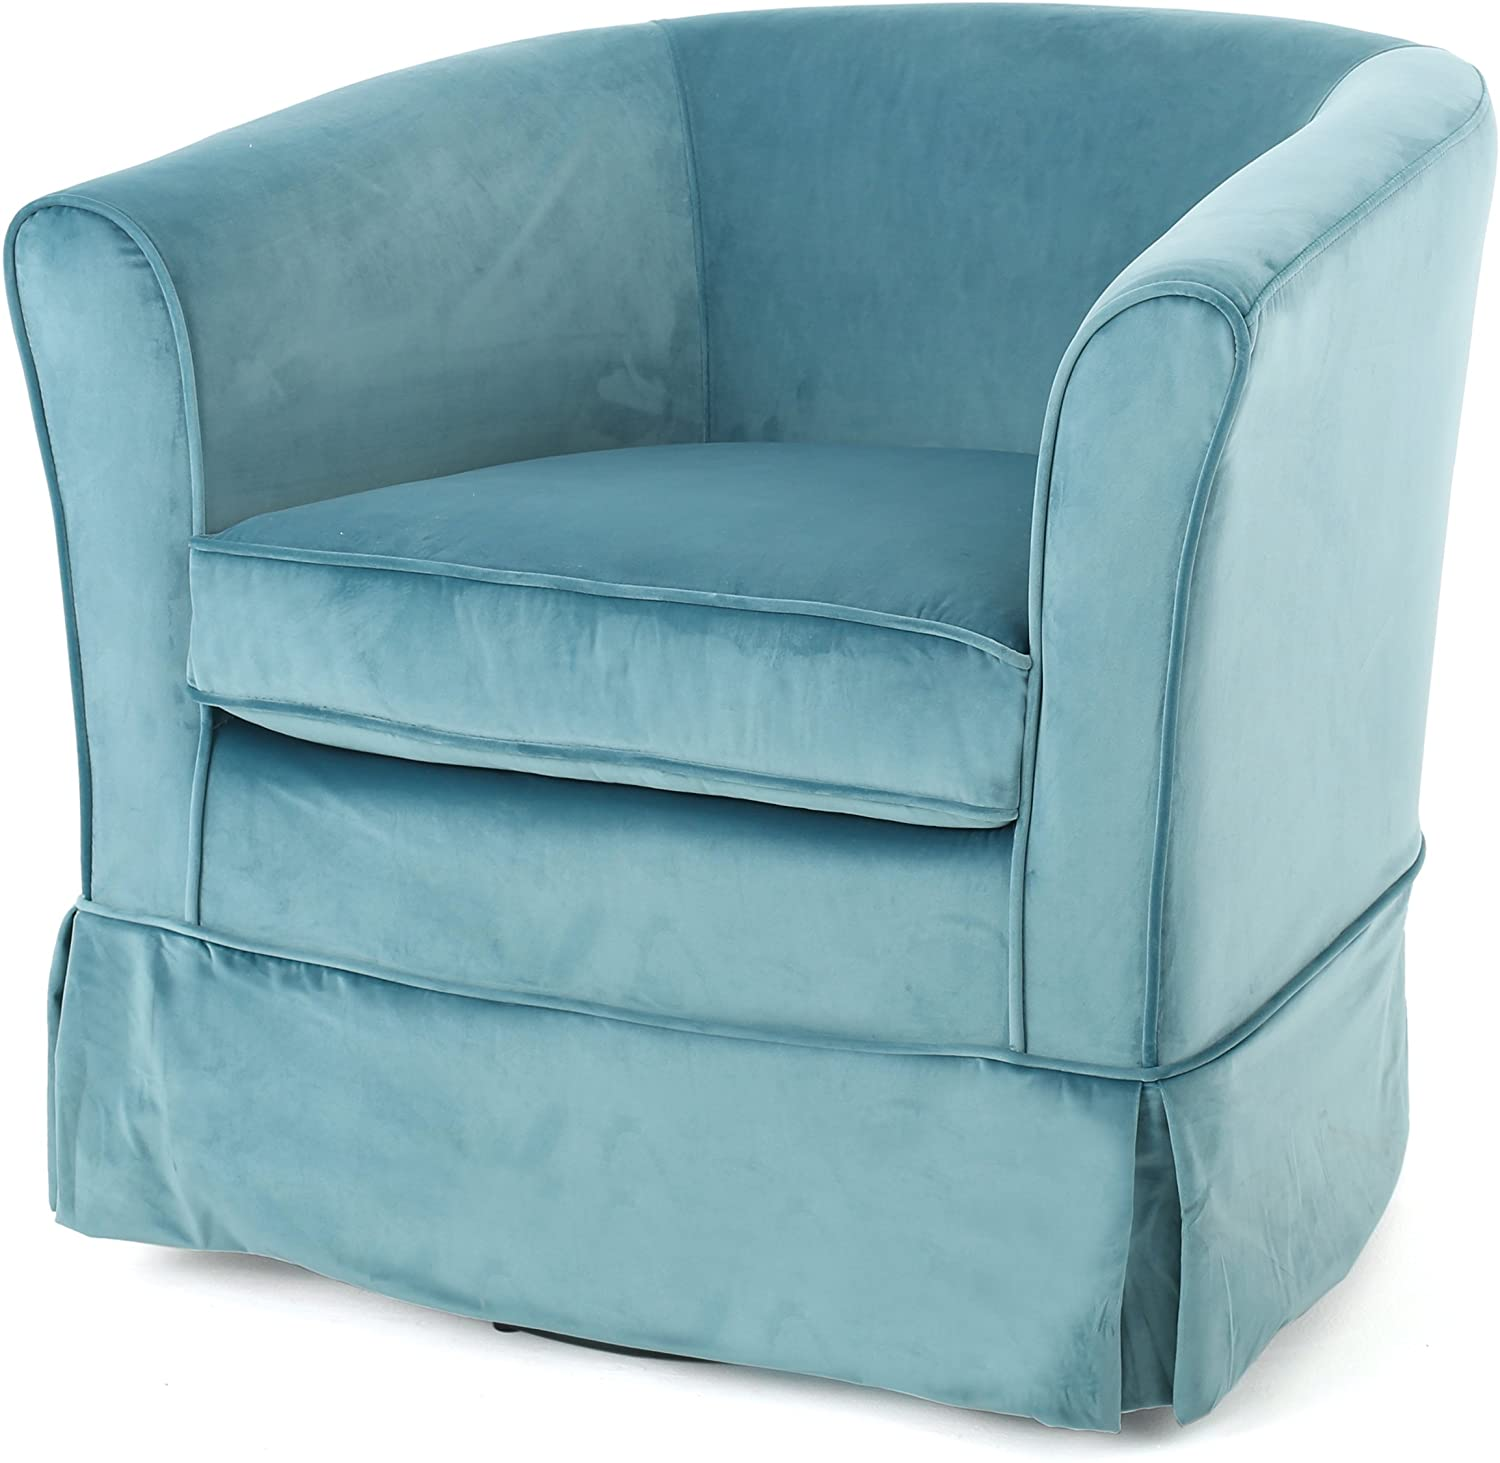 Christopher Knight Home Cecilia Swivel Chair with Loose Cover, Blue Velvet